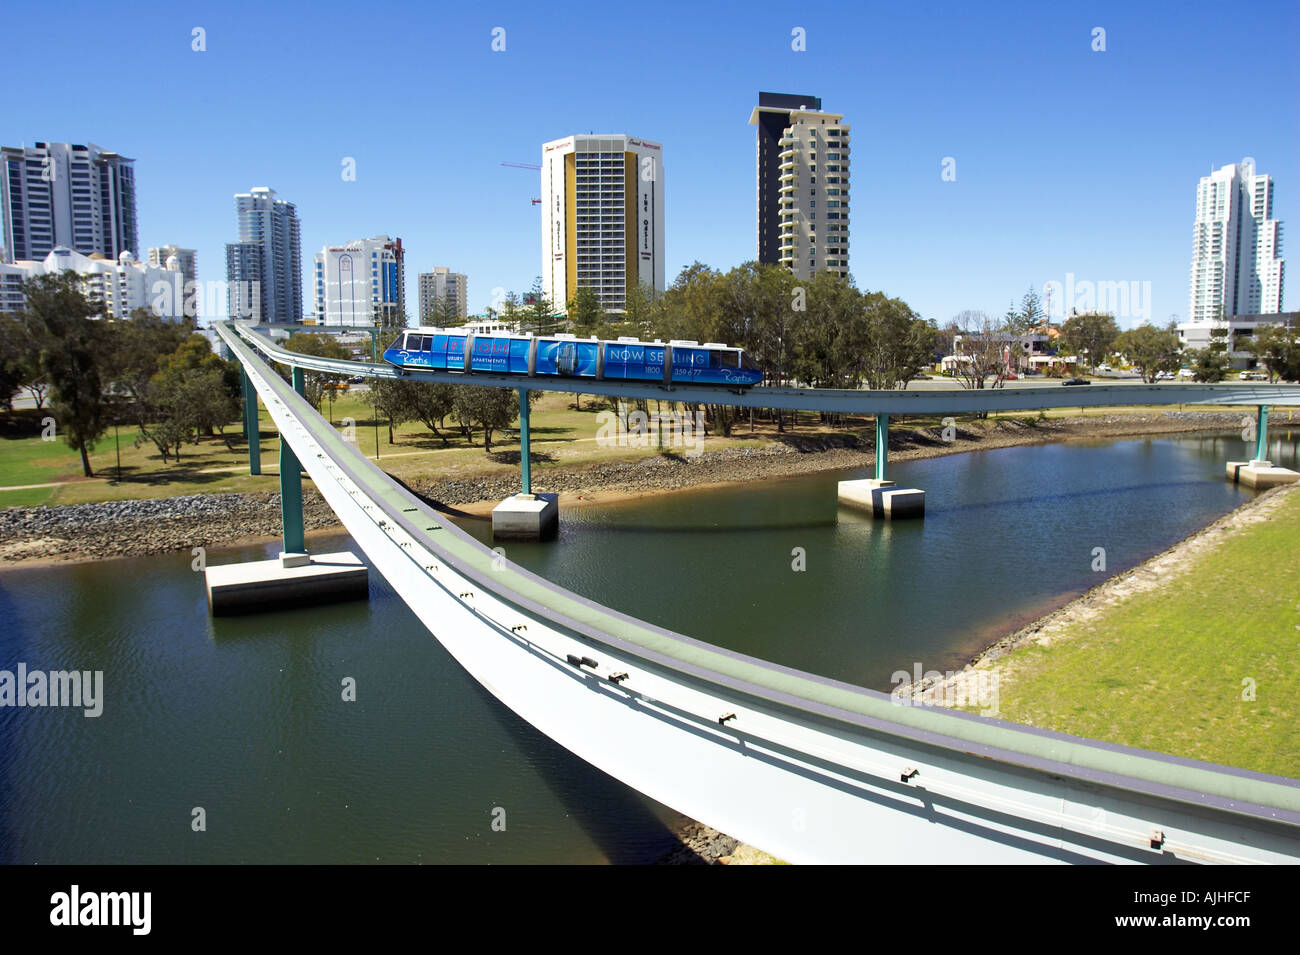 Image result for gold coast monorail images